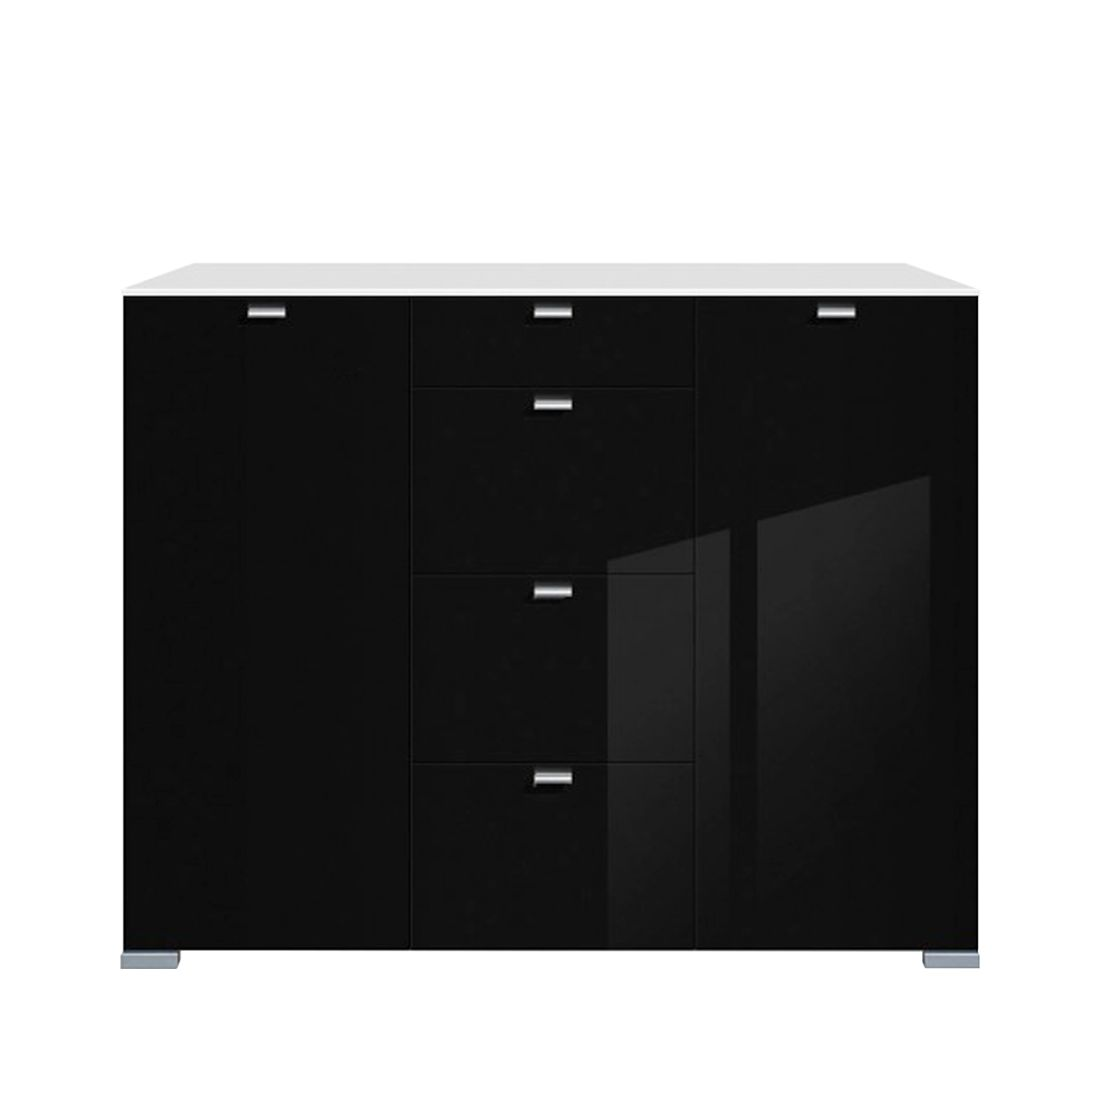 schr nke online g nstig kaufen ber shop24. Black Bedroom Furniture Sets. Home Design Ideas